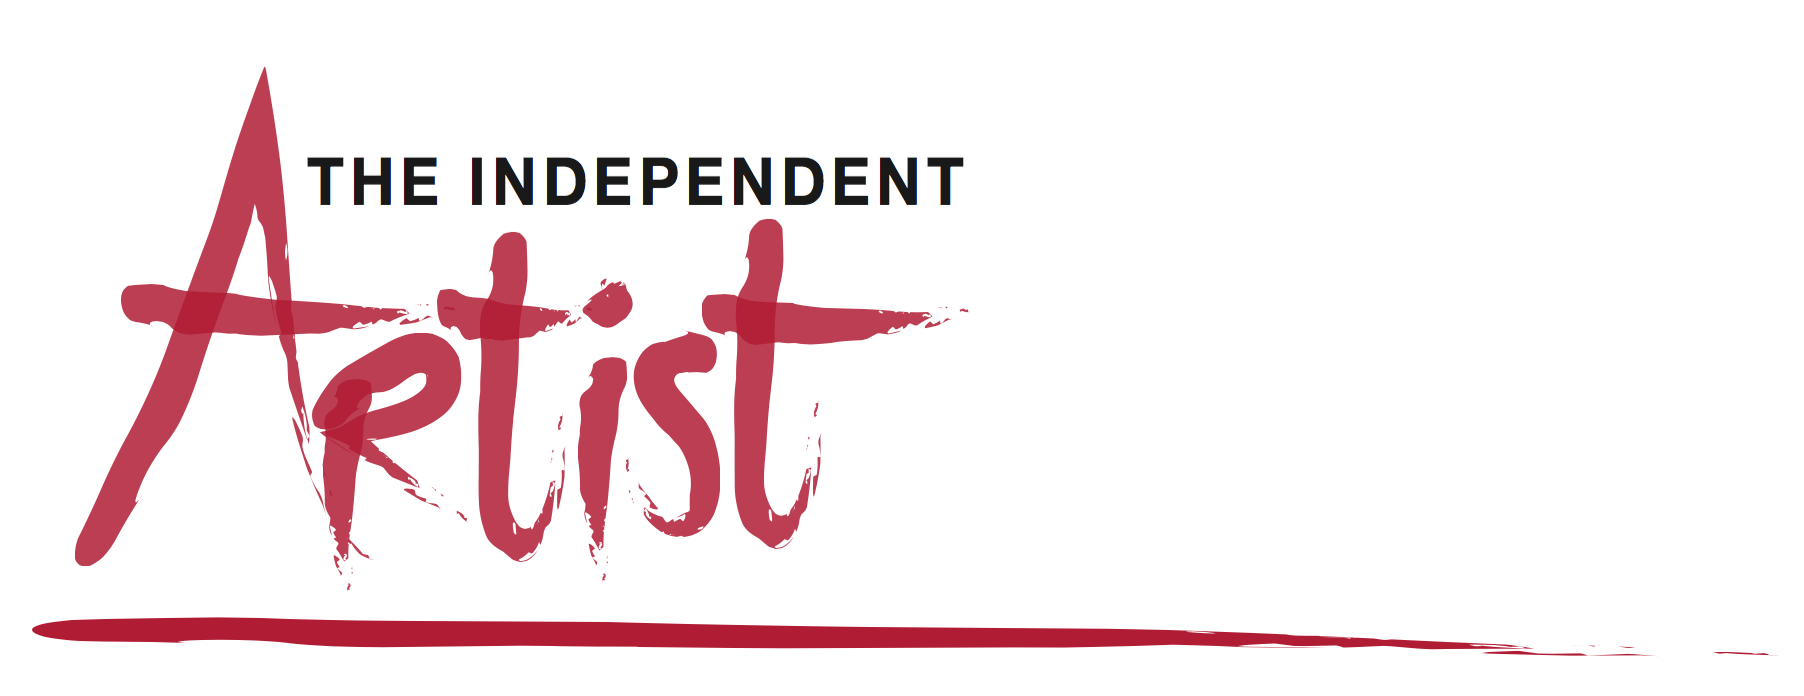 the purpose of the independent artist is to help us fulfill our mission by providing helpful and timely information to artists who market their work at art